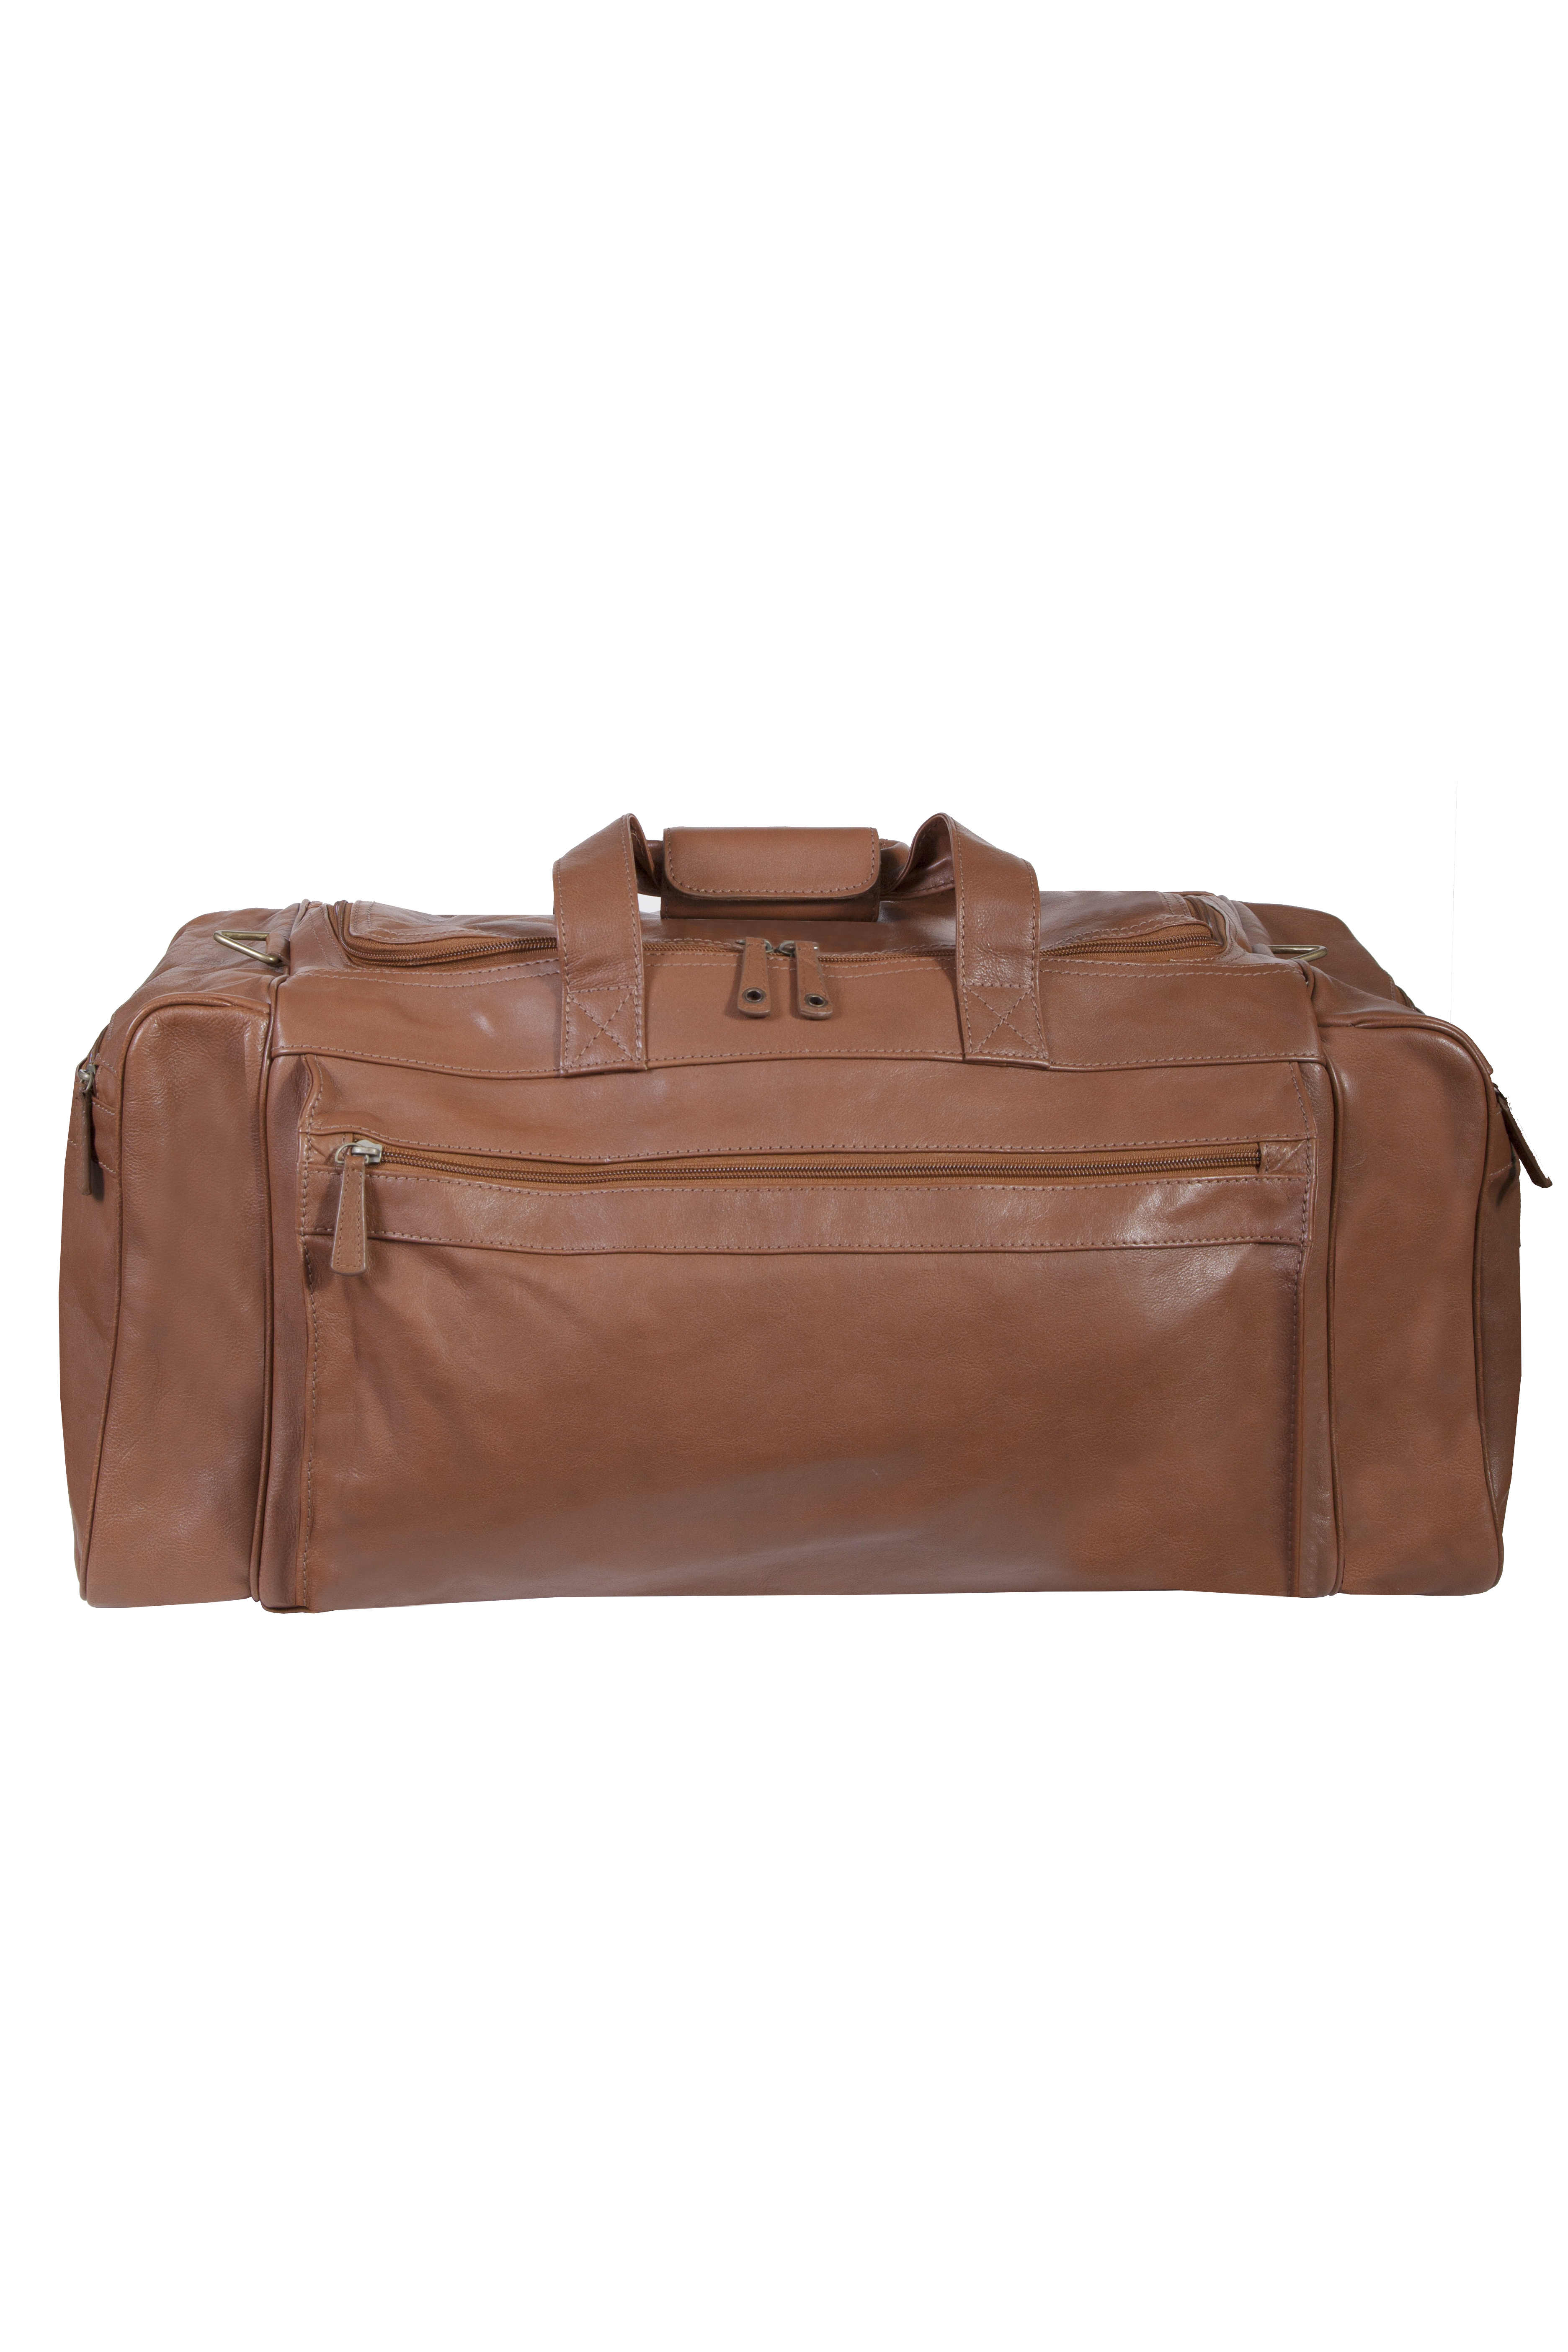 Large leather duffle bag